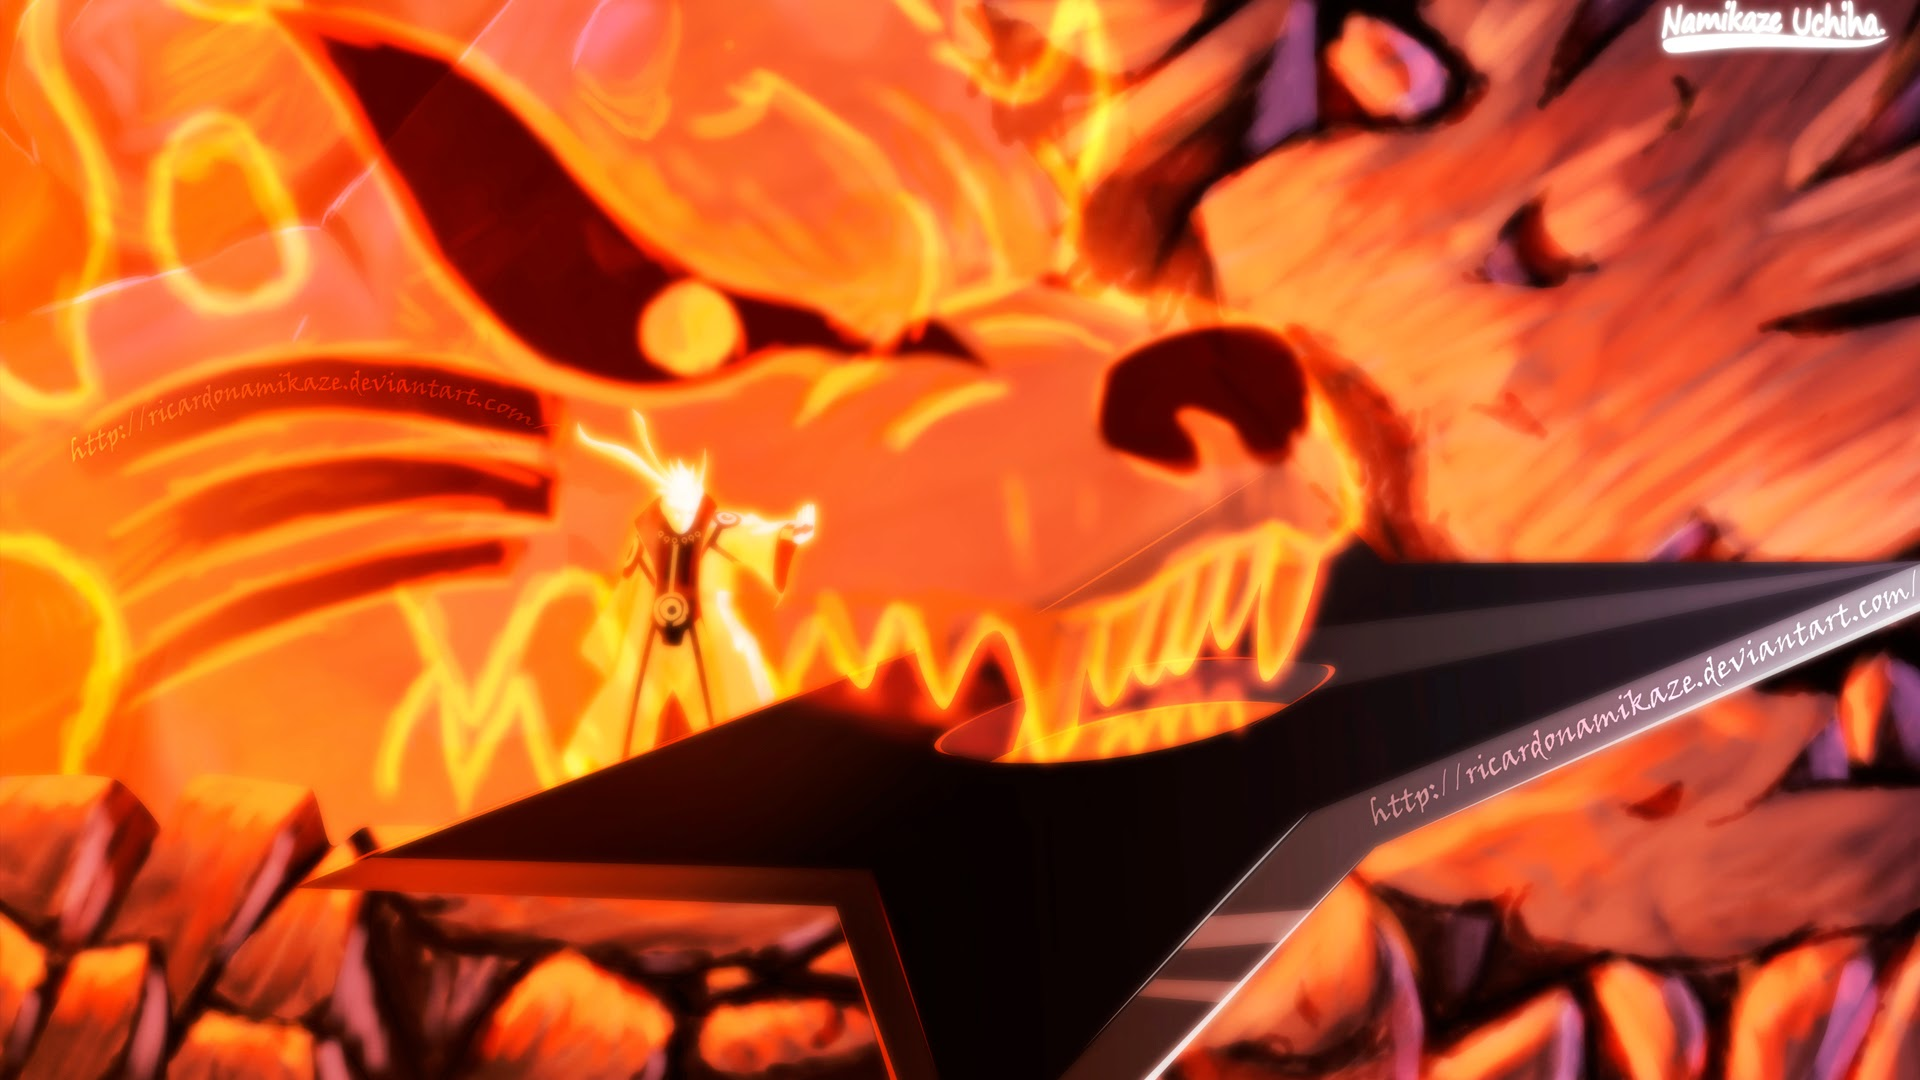 75 Naruto Nine Tails Wallpaper On Wallpapersafari